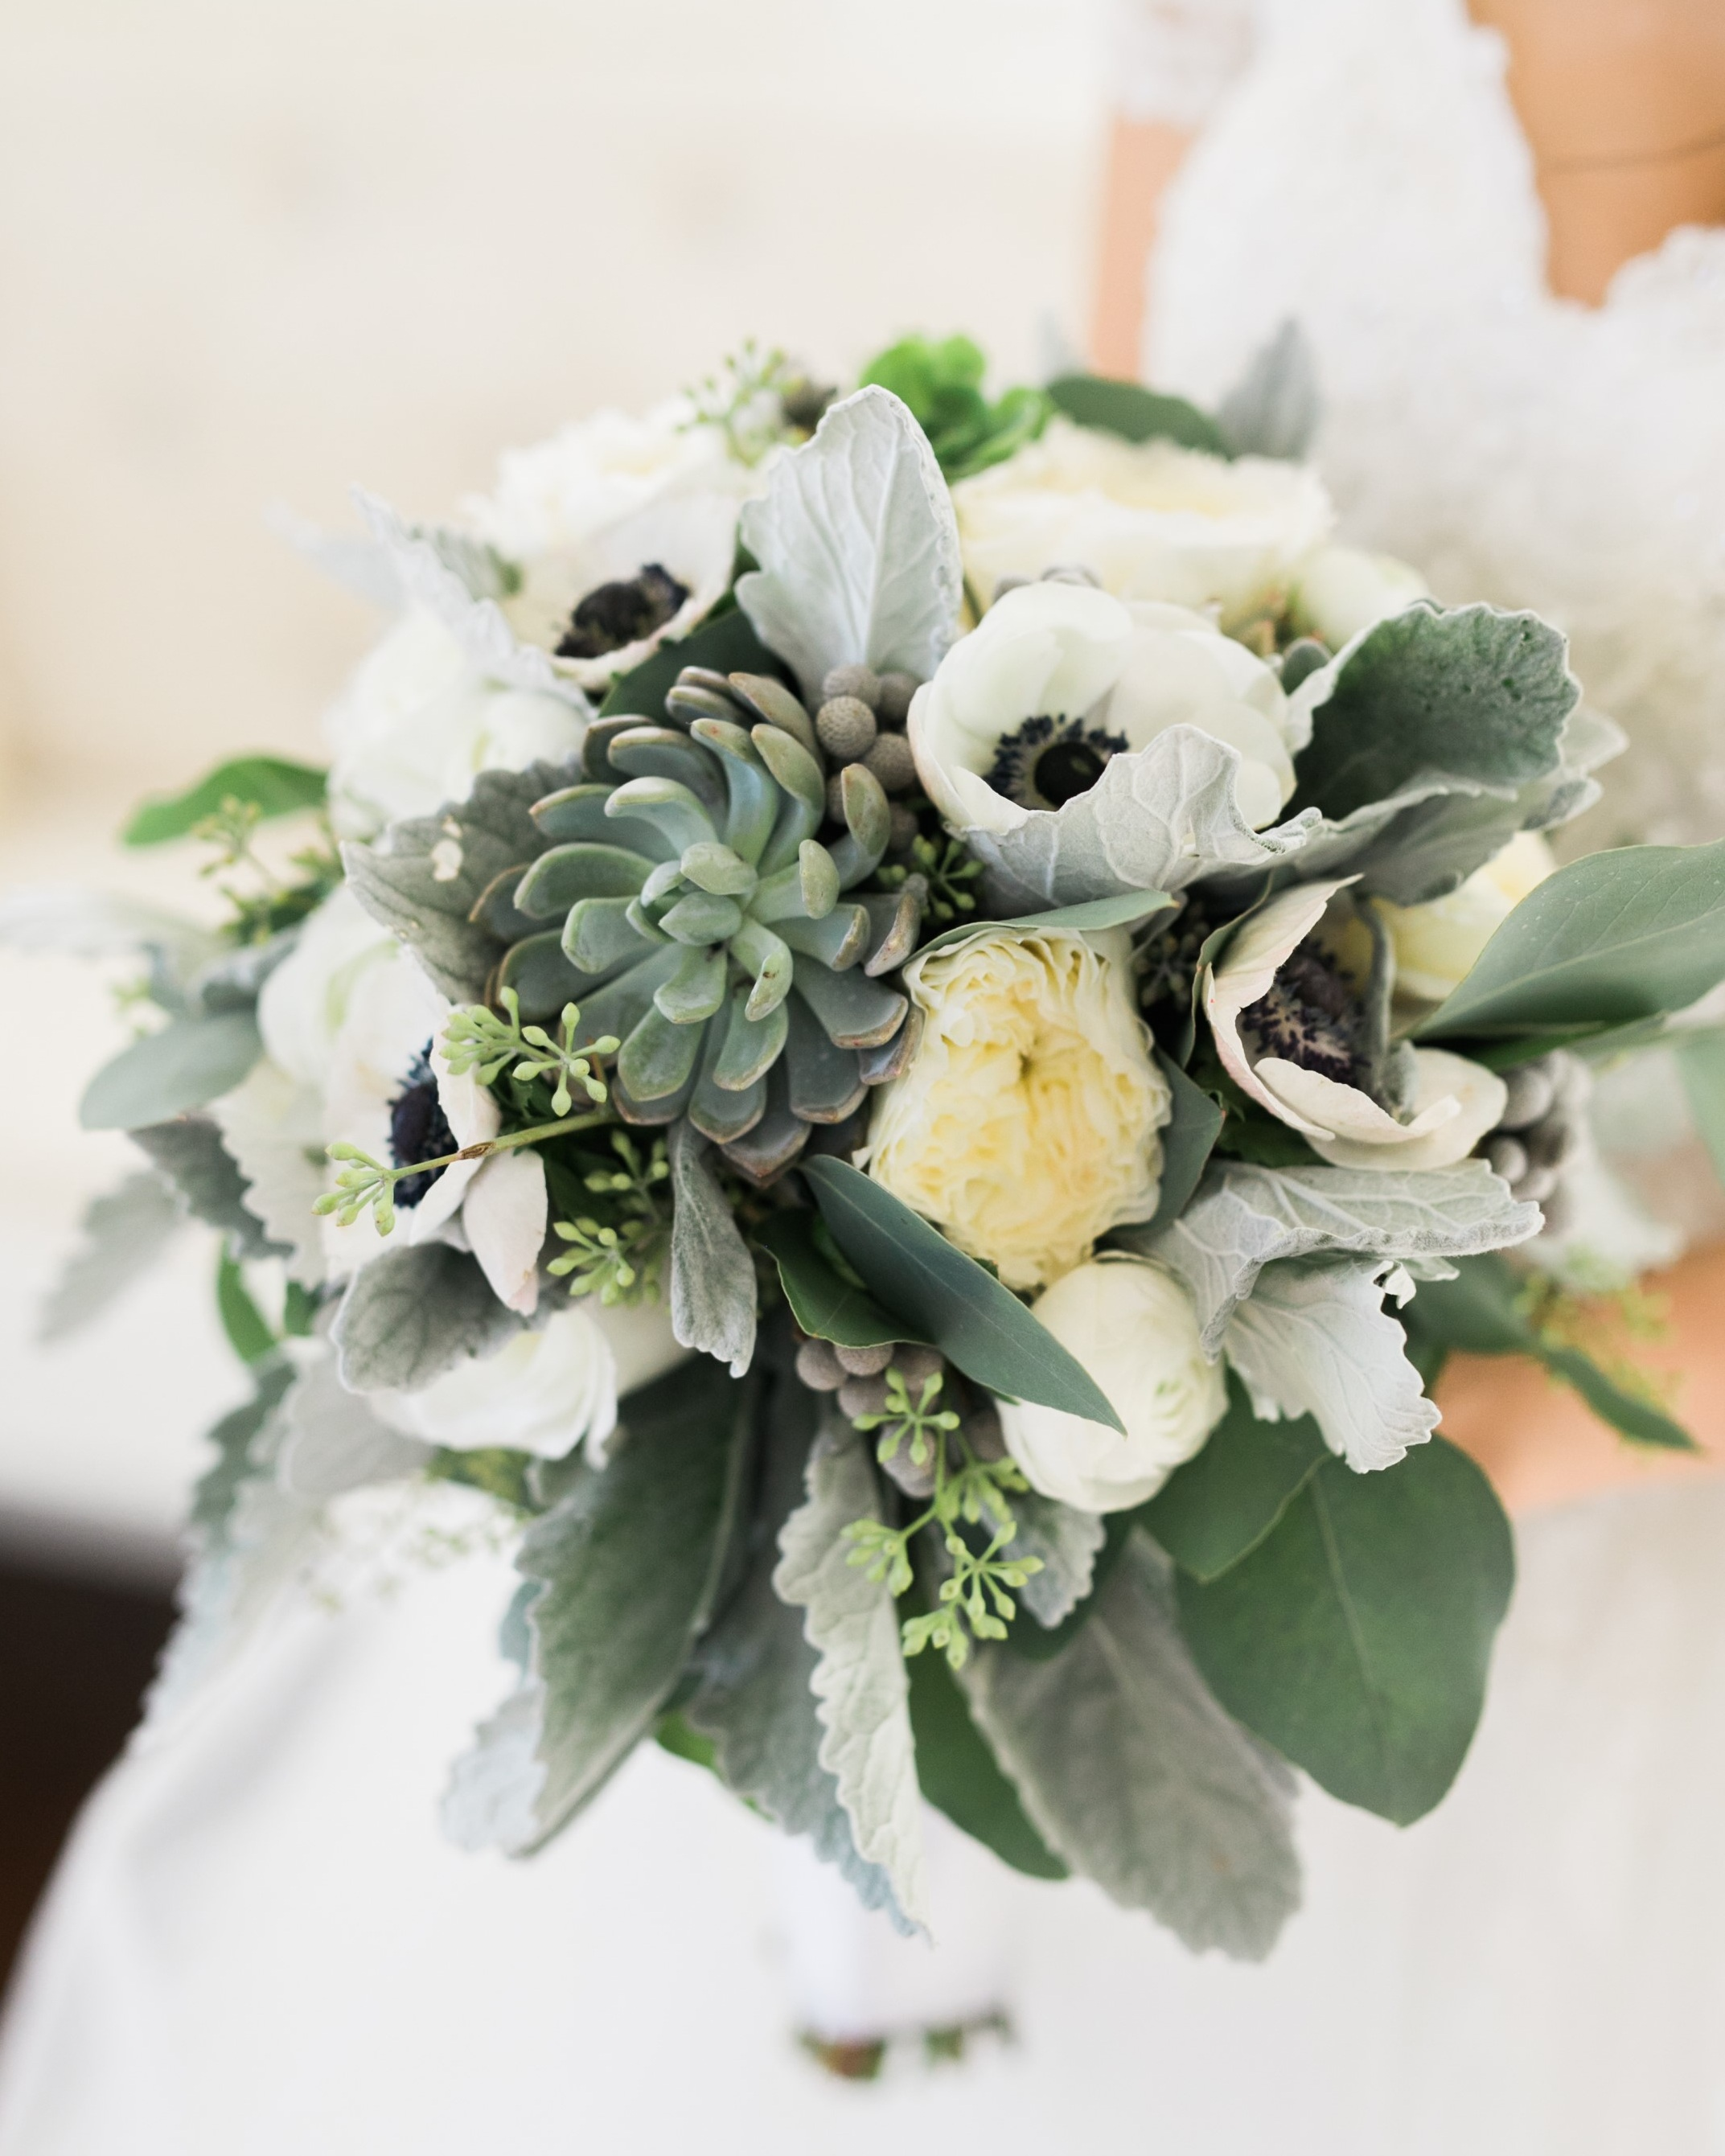 Bridal bouquet white and grey with succulents2.jpg